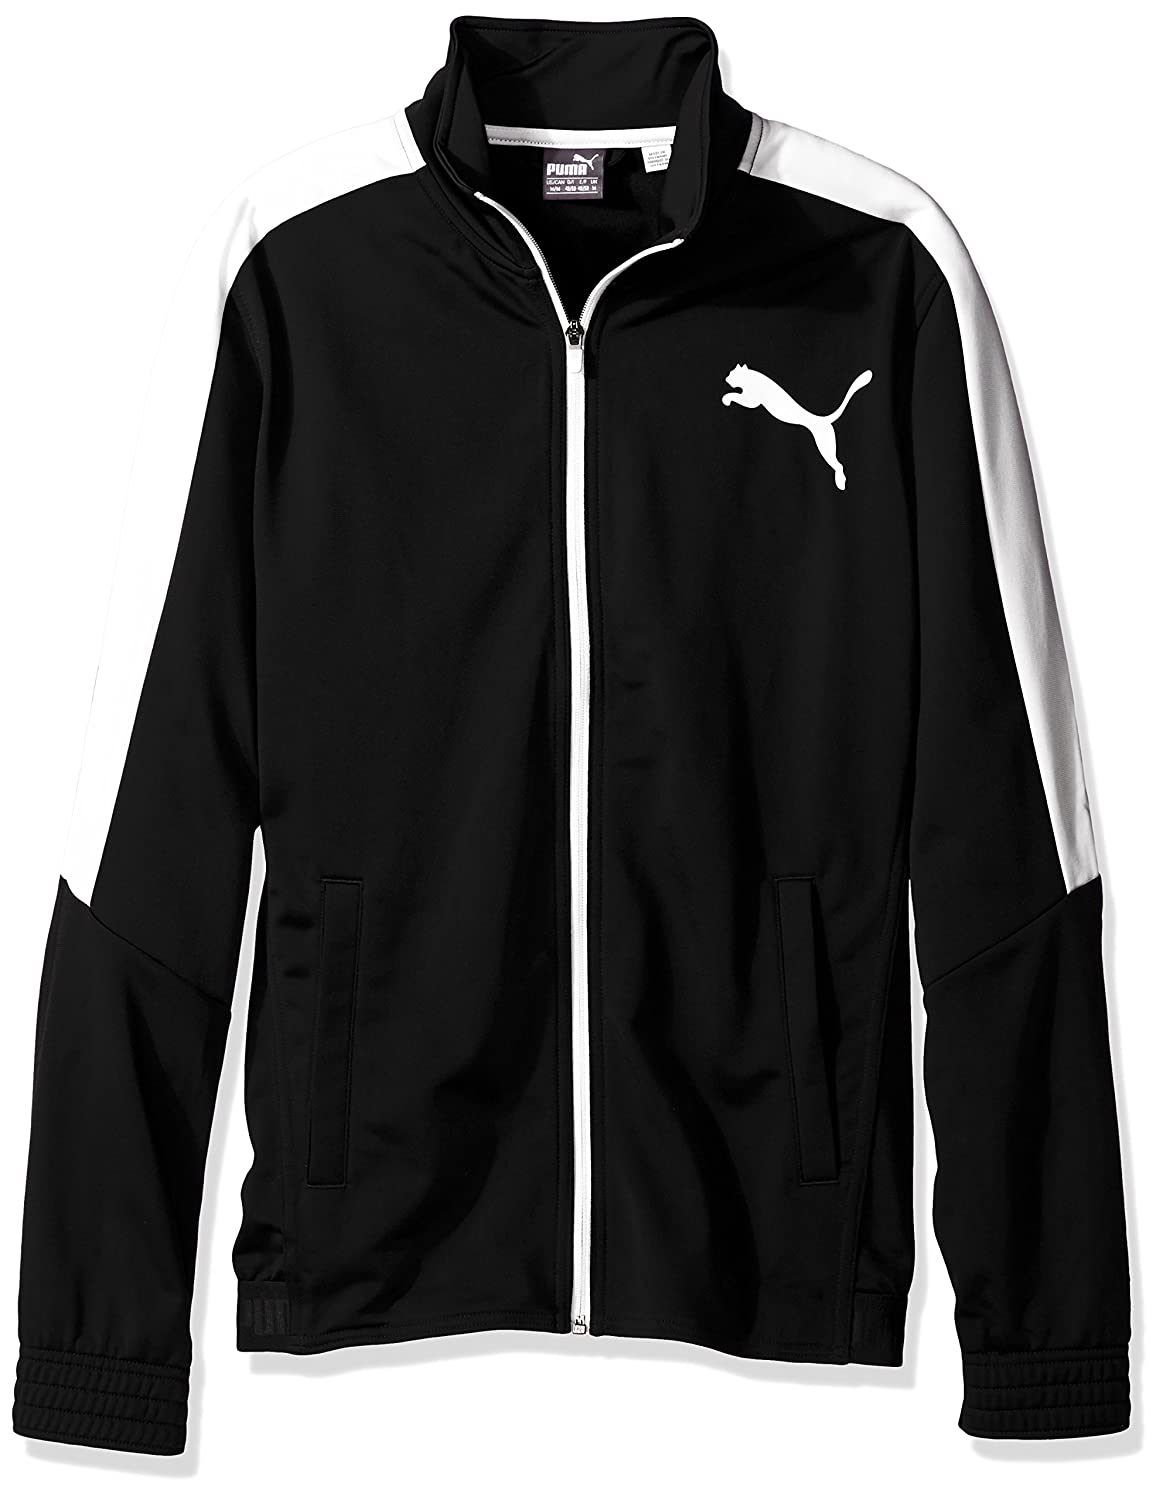 PUMA mens Contrast Jacket Puma Men' s Athletic